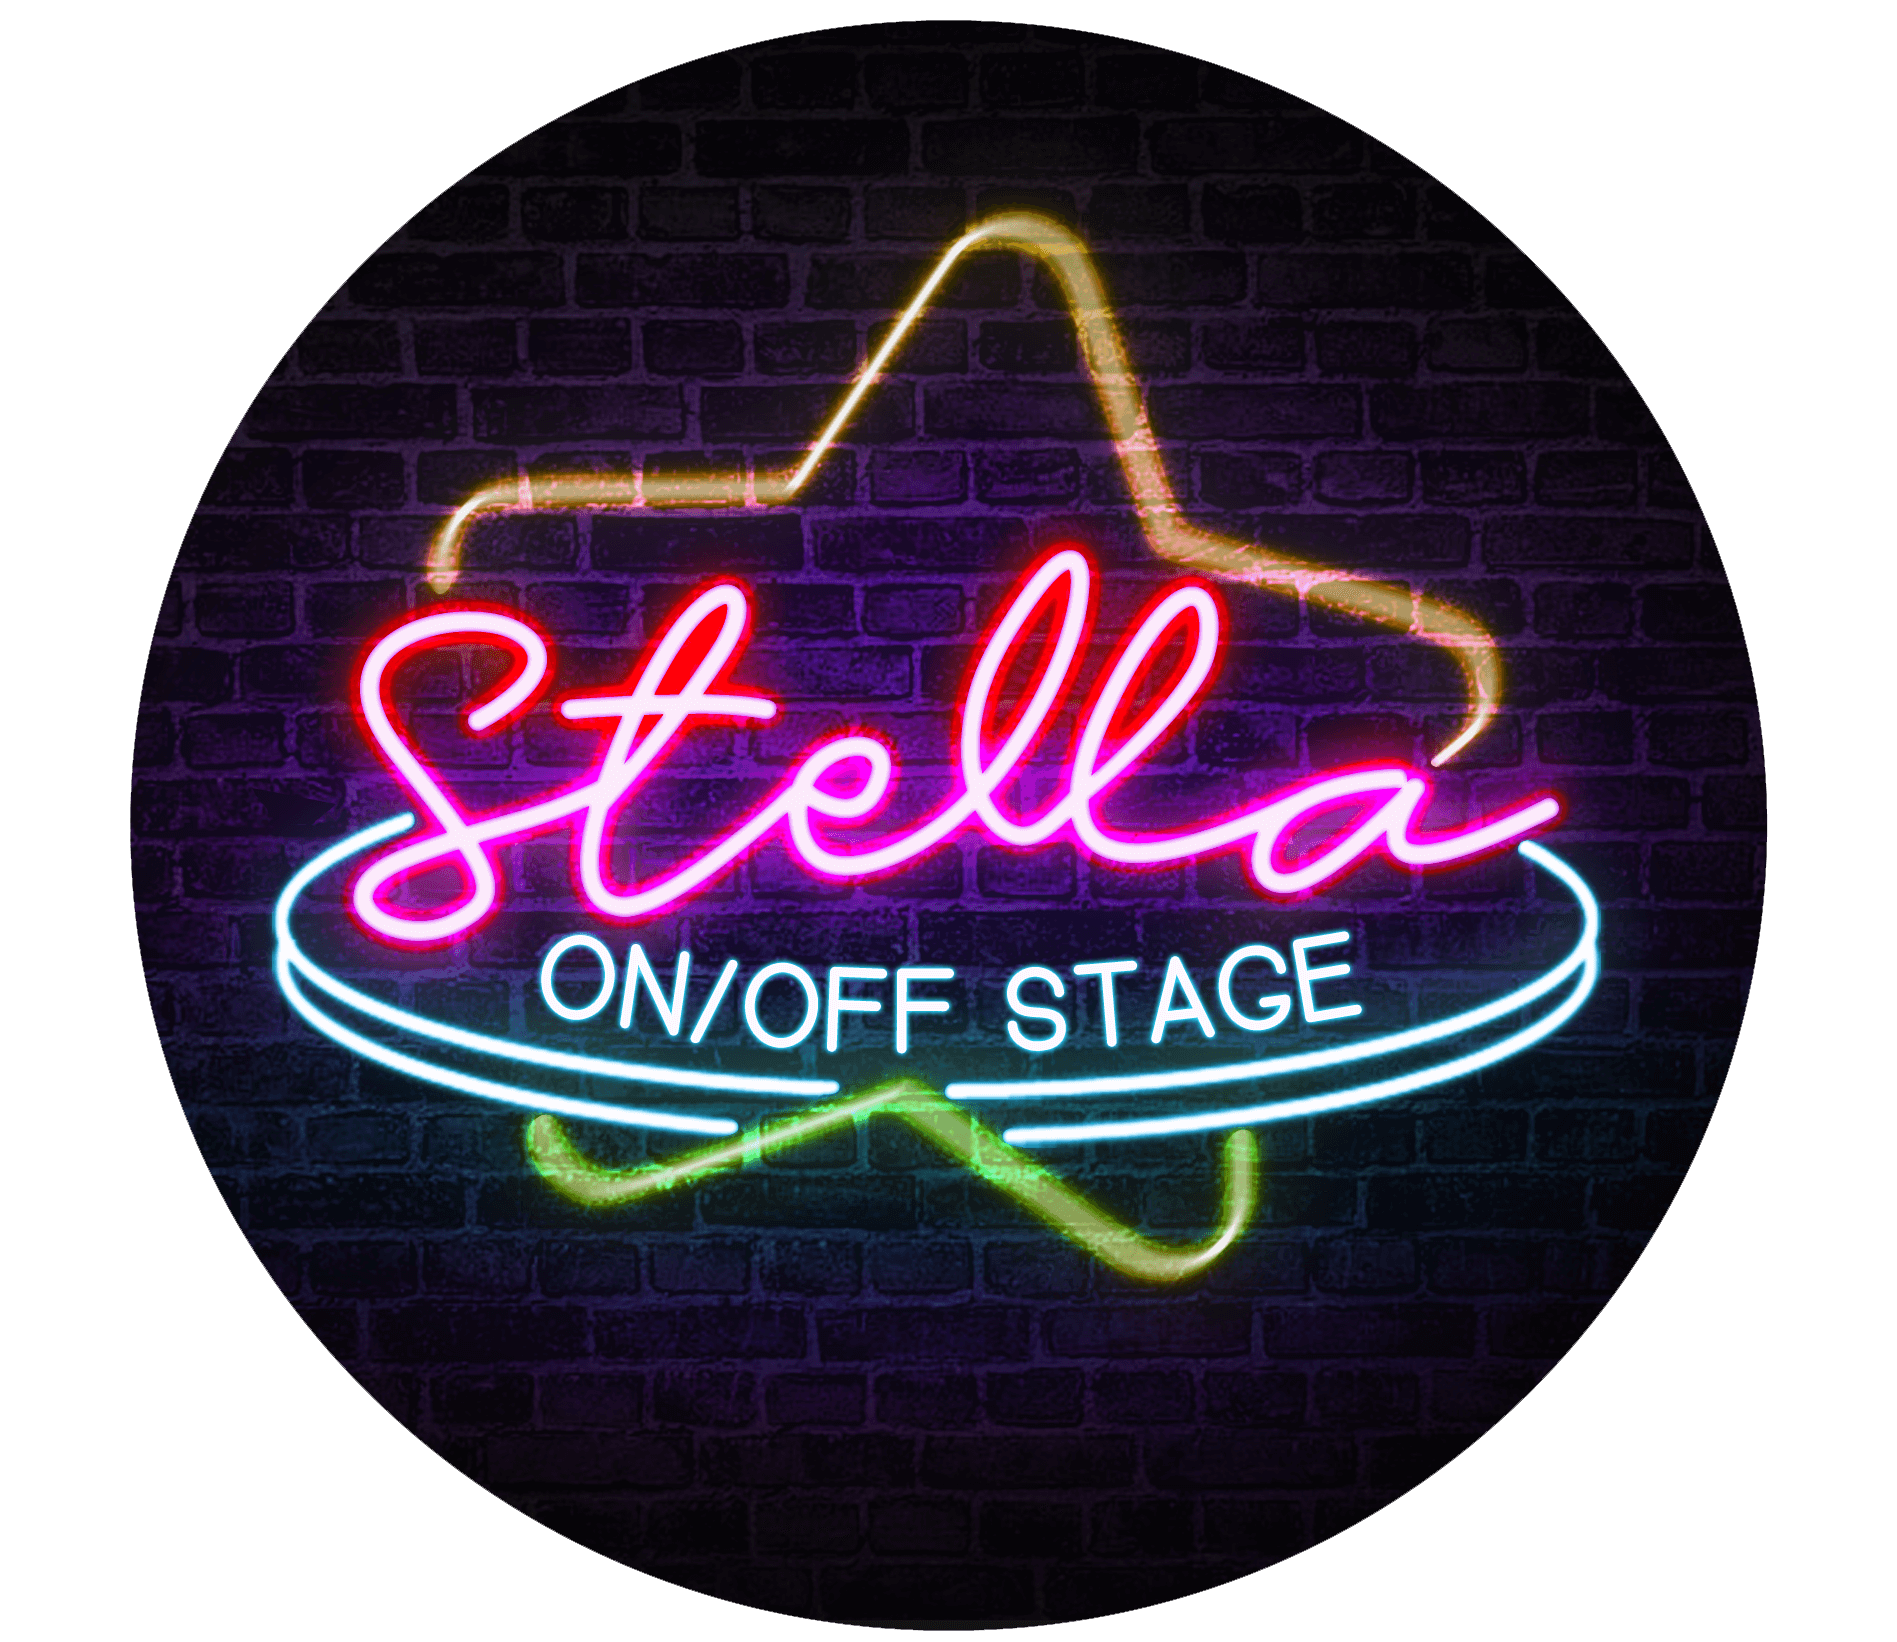 Stella On and Off Stage